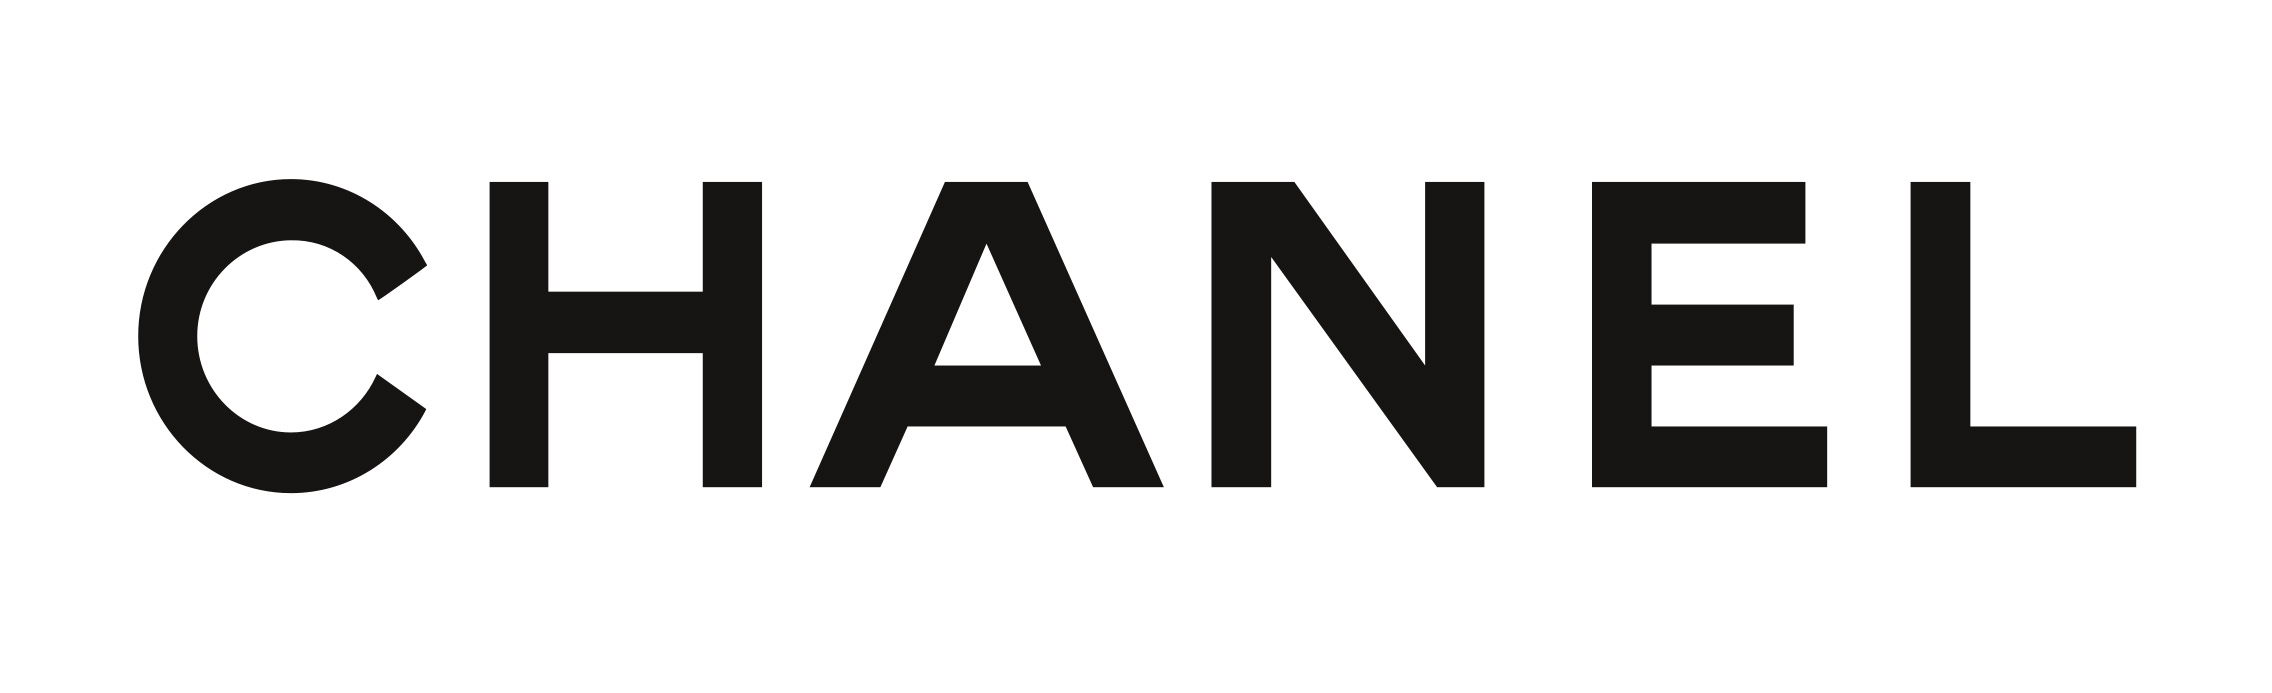 Font-of-the-Chanel-Logo.jpg